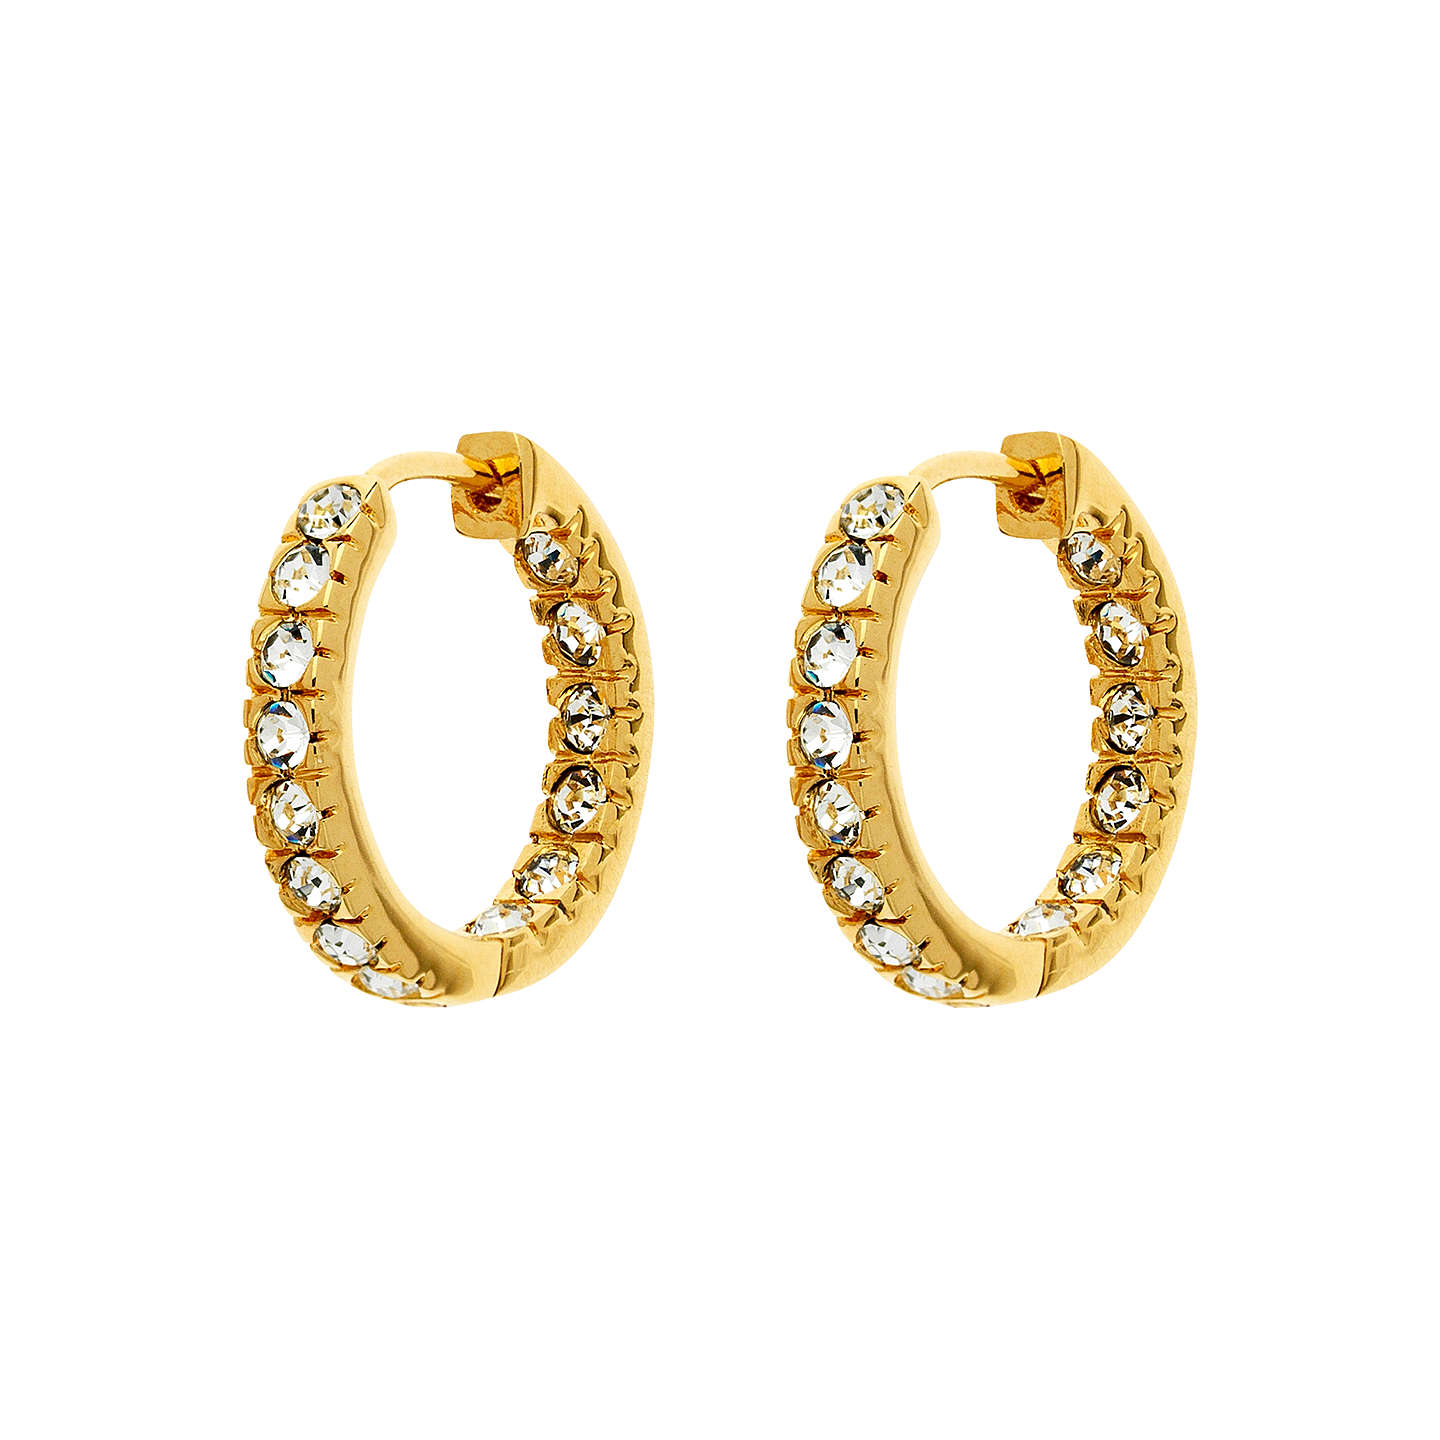 Finesse Gold Plated Cubic Zirconia Hoop Earrings Online At Johnlewis